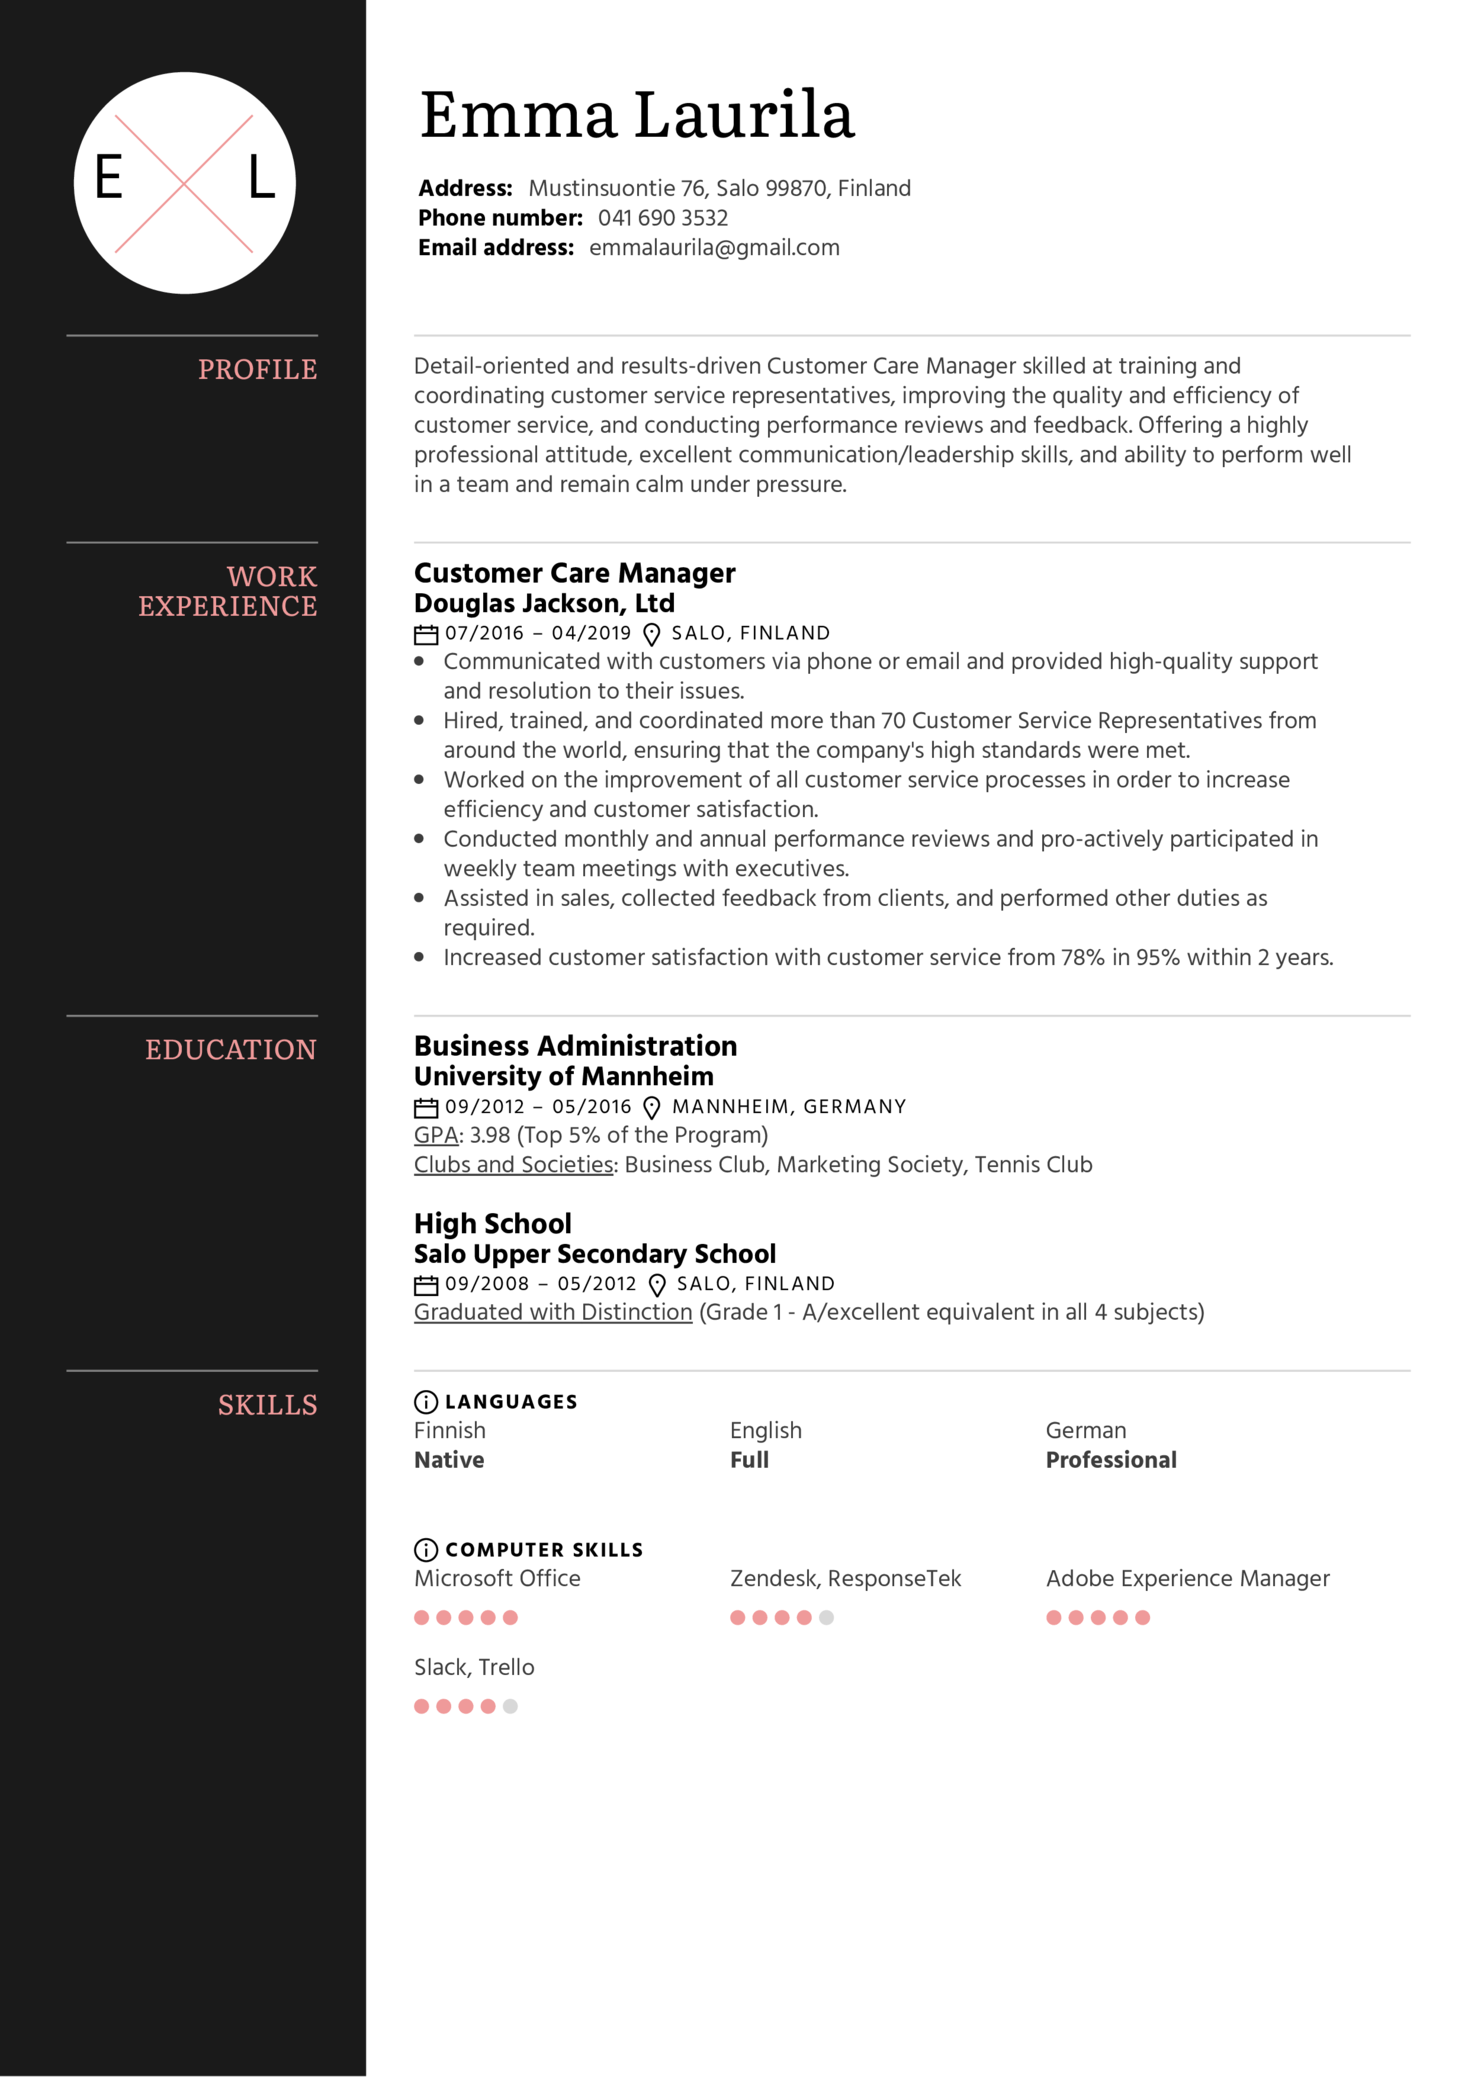 Customer Care Manager Resume Sample (Part 1)